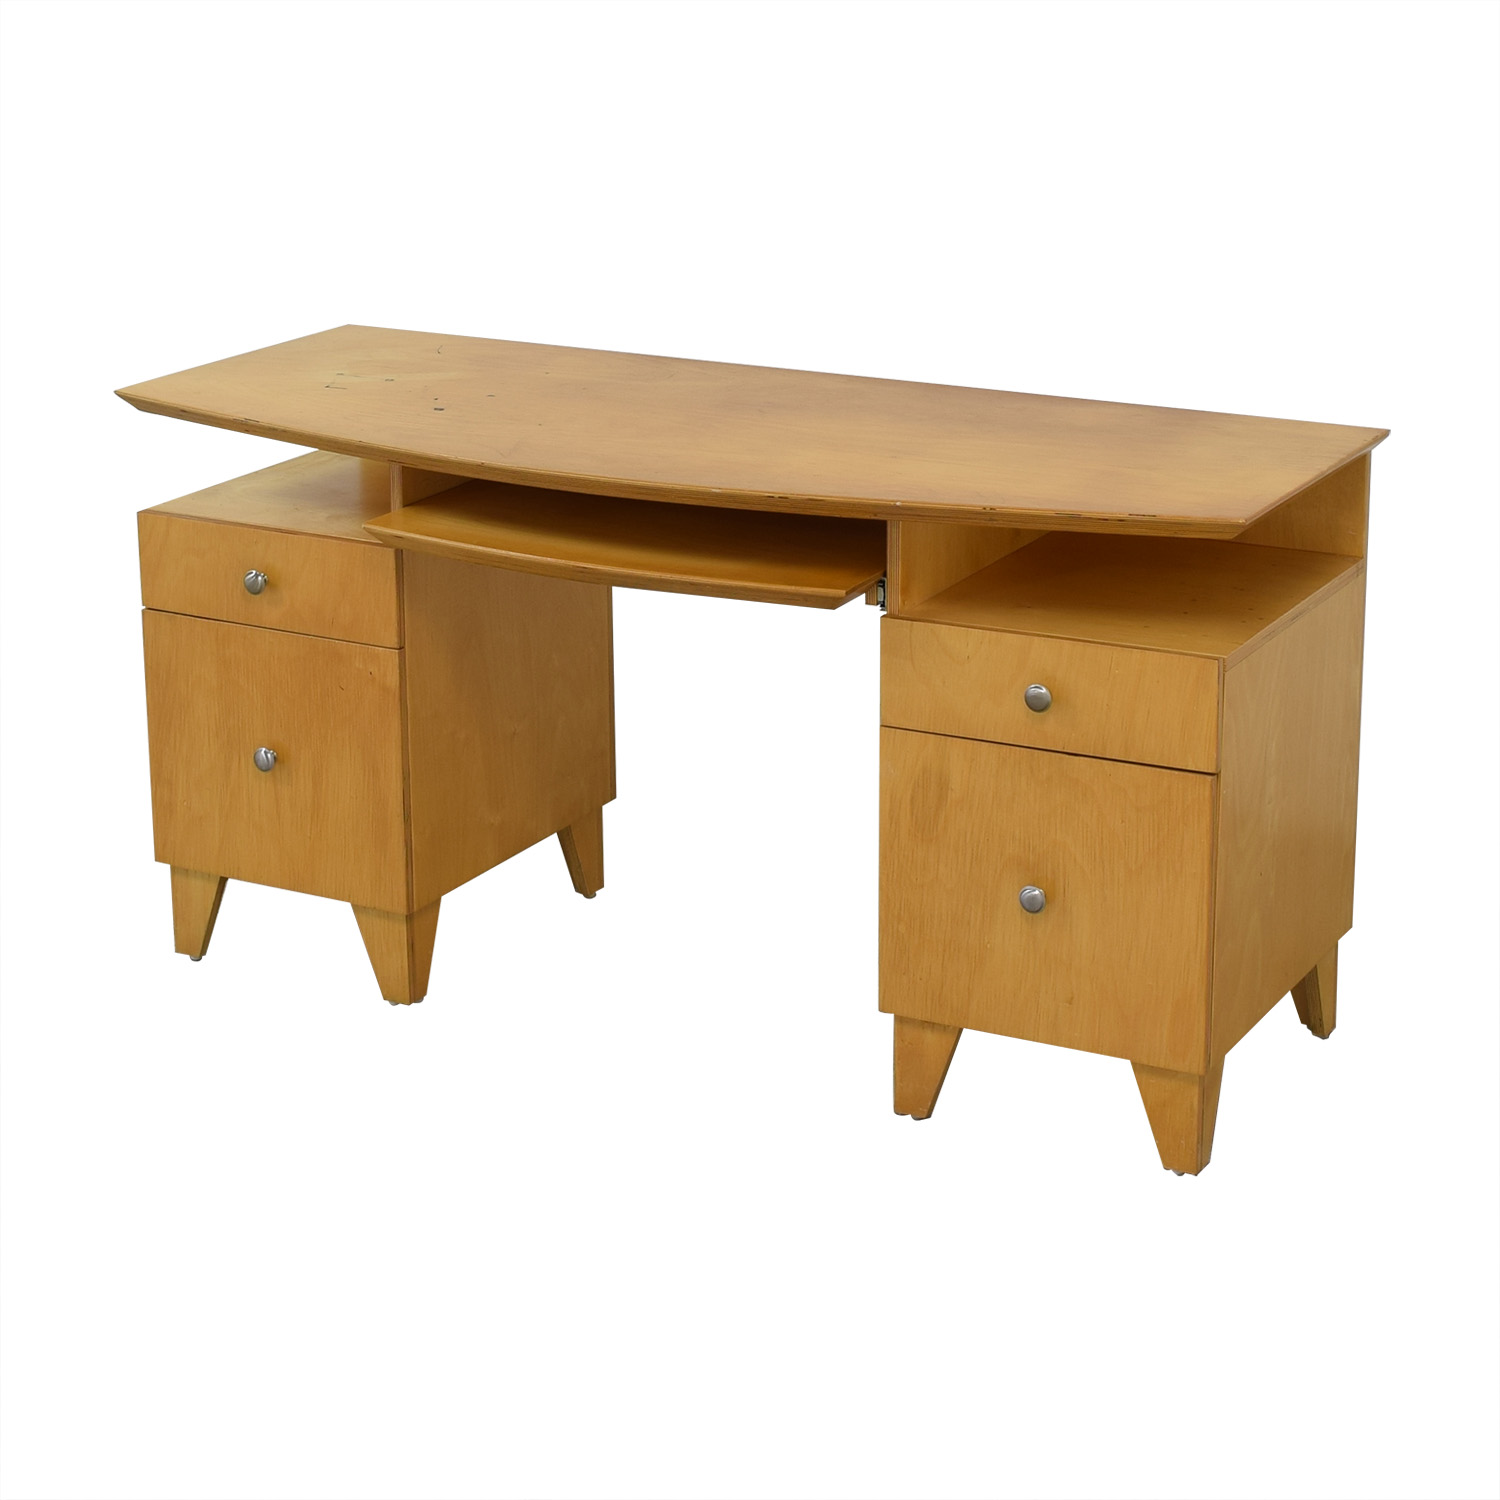 Modernist Desk with Pull-Out Keyboard Tray Home Office Desks